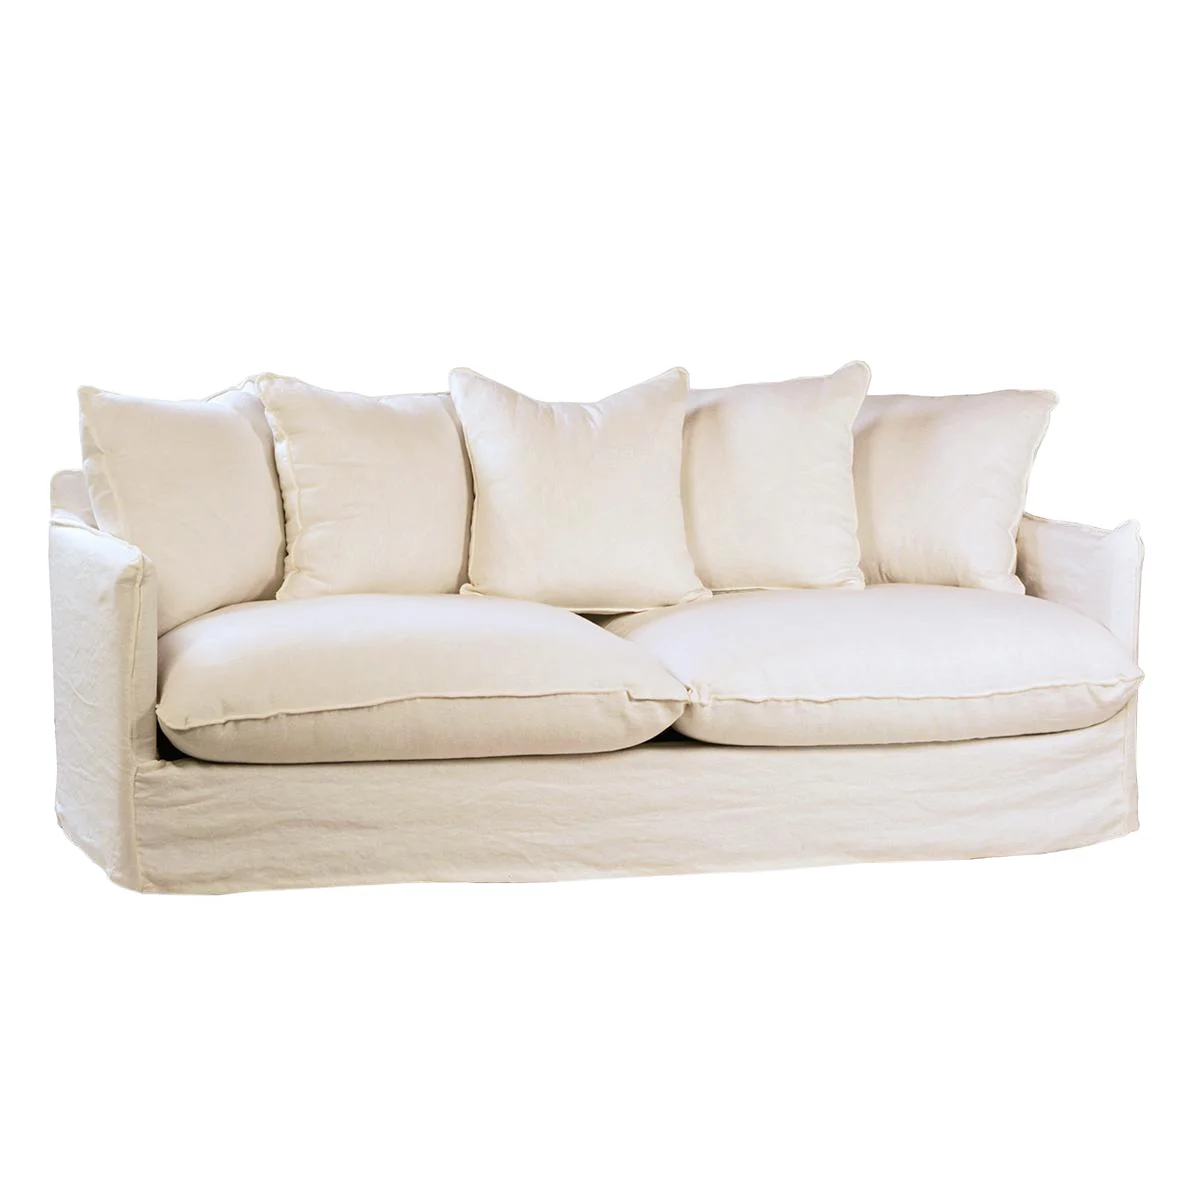 White Linen Pillow Back Sofa With Images French Furniture Sofa French Style Sofa Linen Pillows